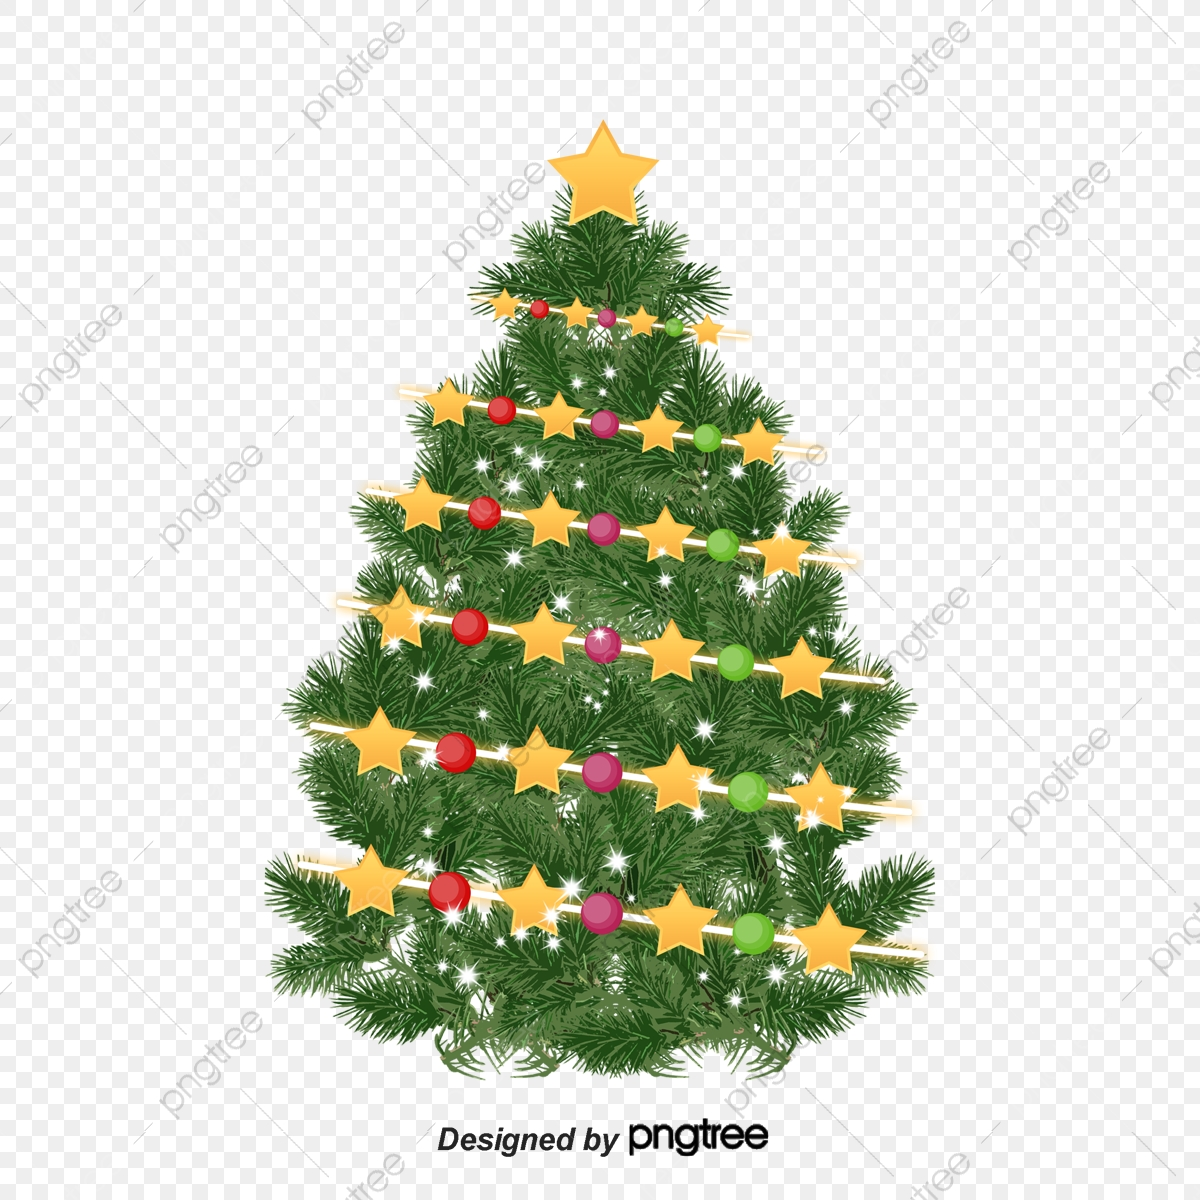 Arbol De Navidad, Arbol De Navidad, Navidad, Los árboles Archivo PNG.